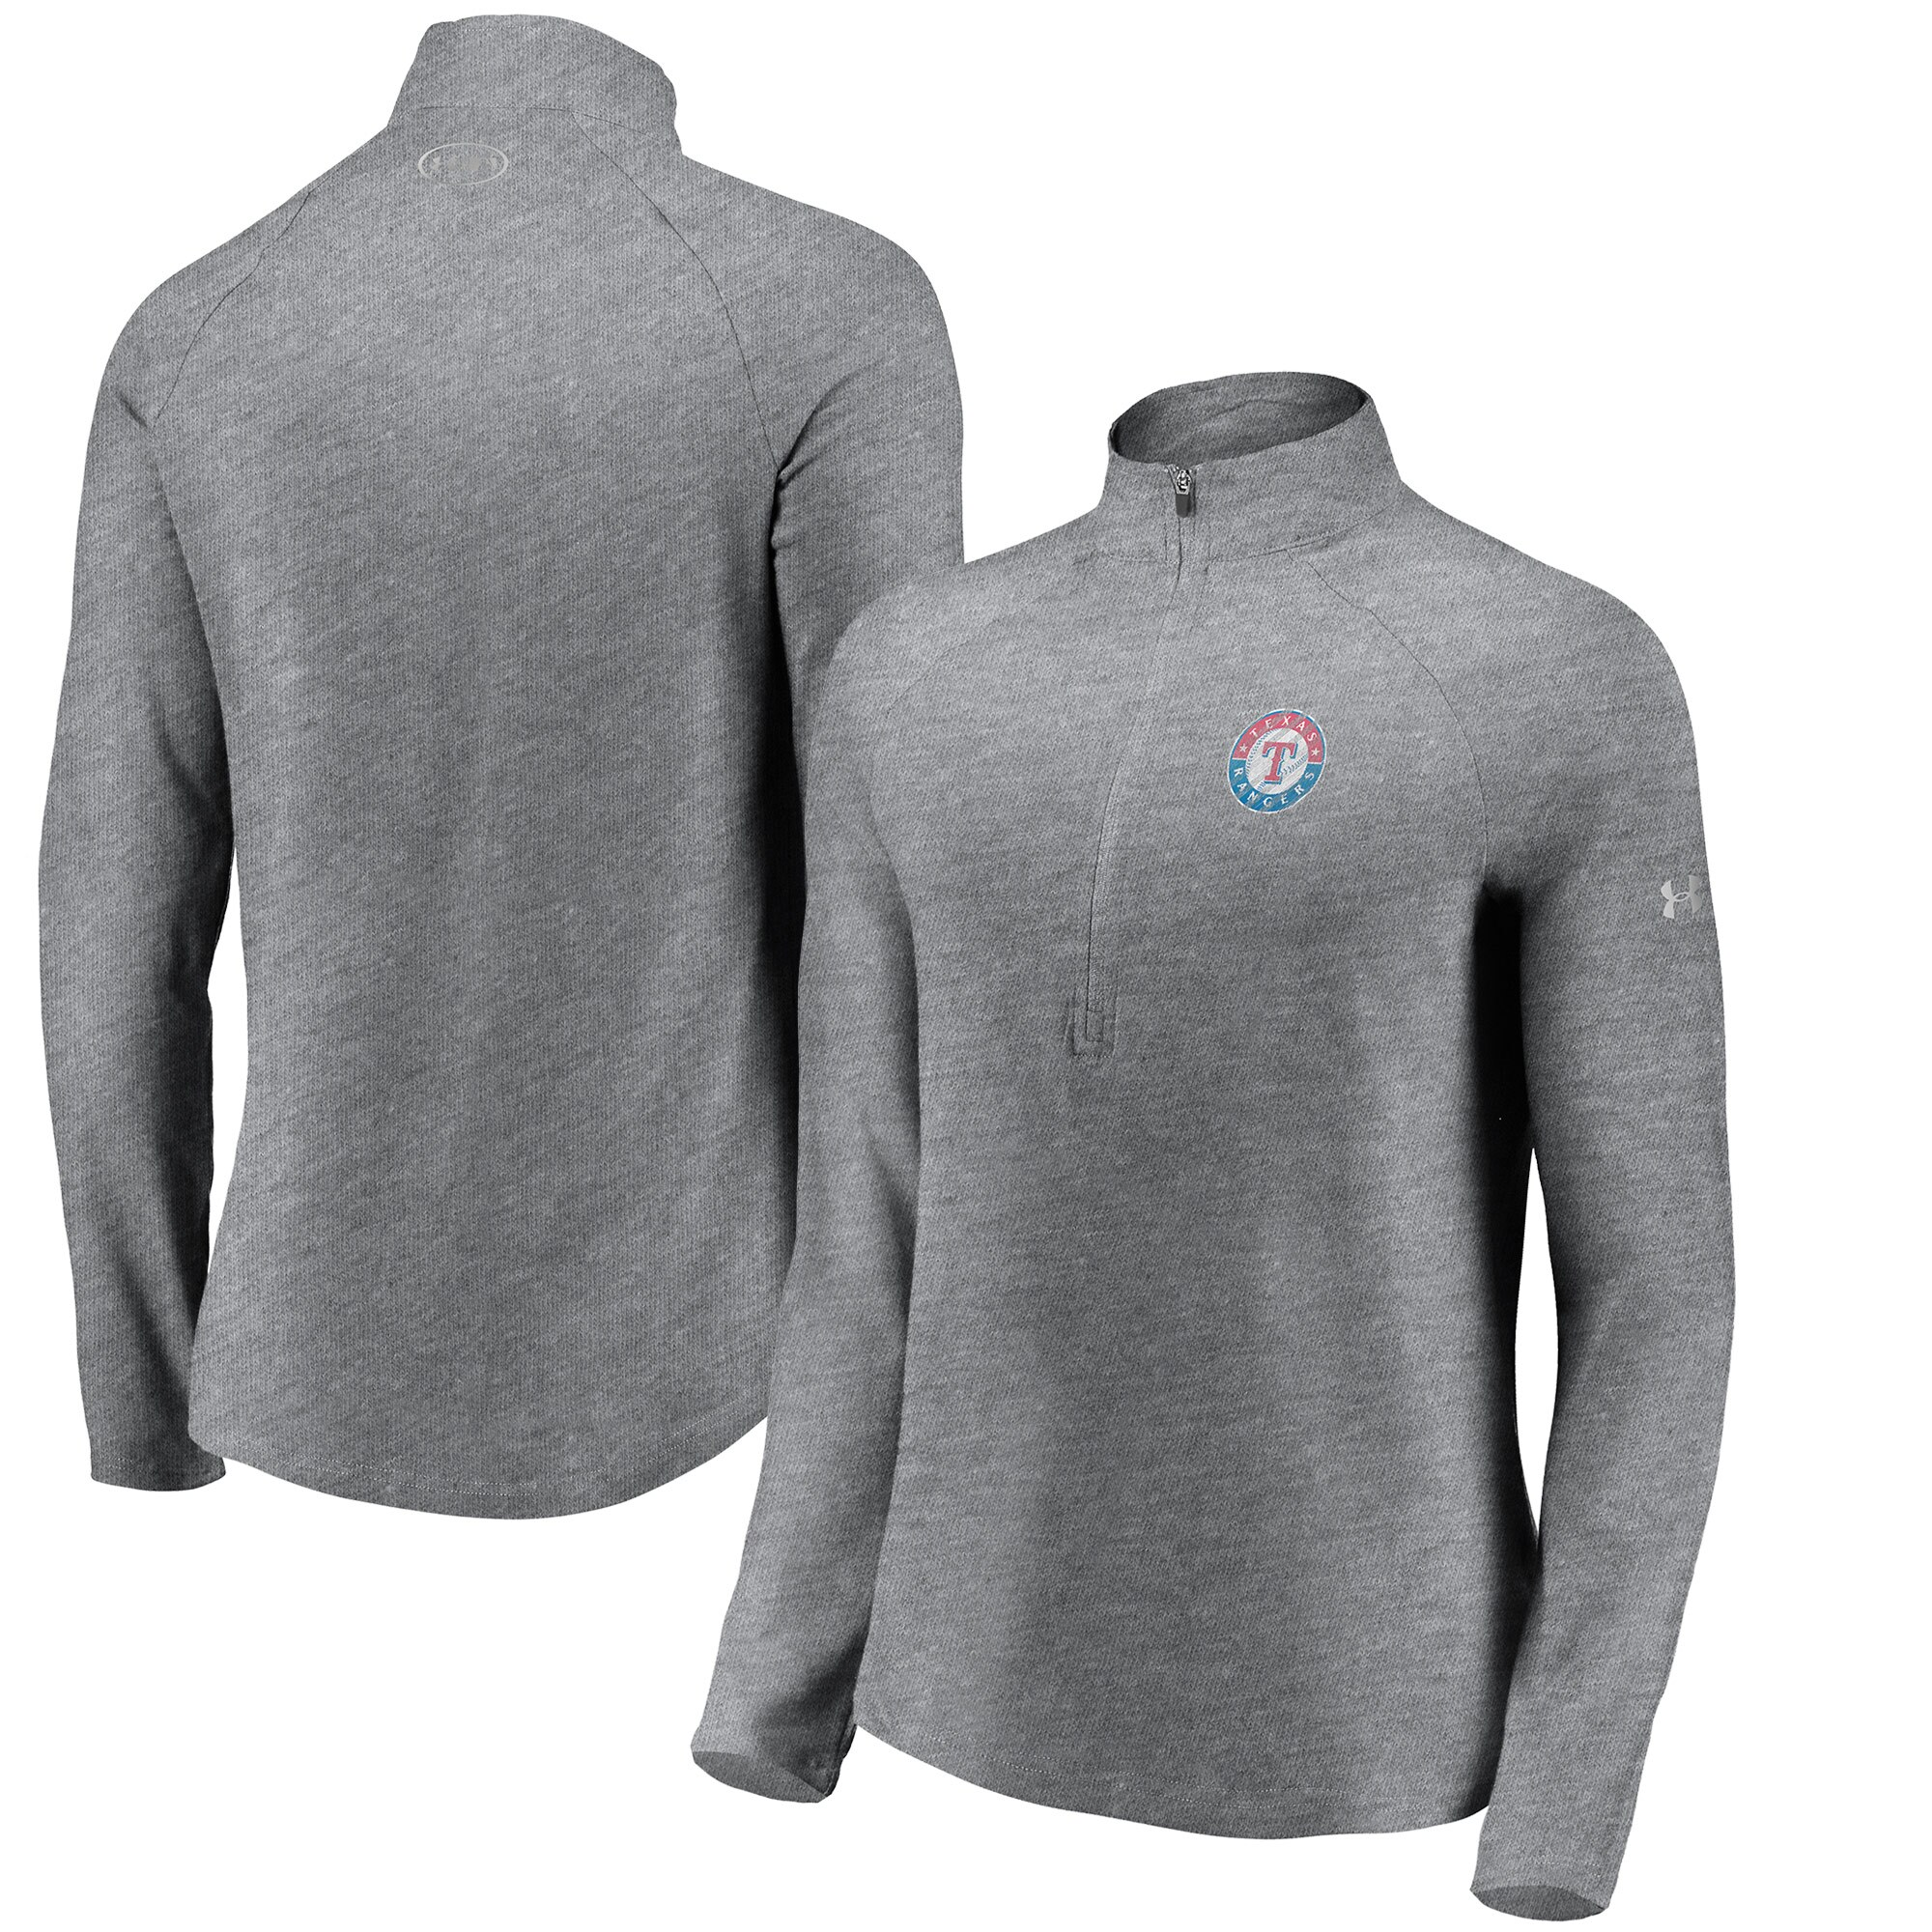 Texas Rangers Under Armour Women's Passion Alternate Performance Tri-Blend Raglan Half-Zip Pullover Jacket - Heathered Gray